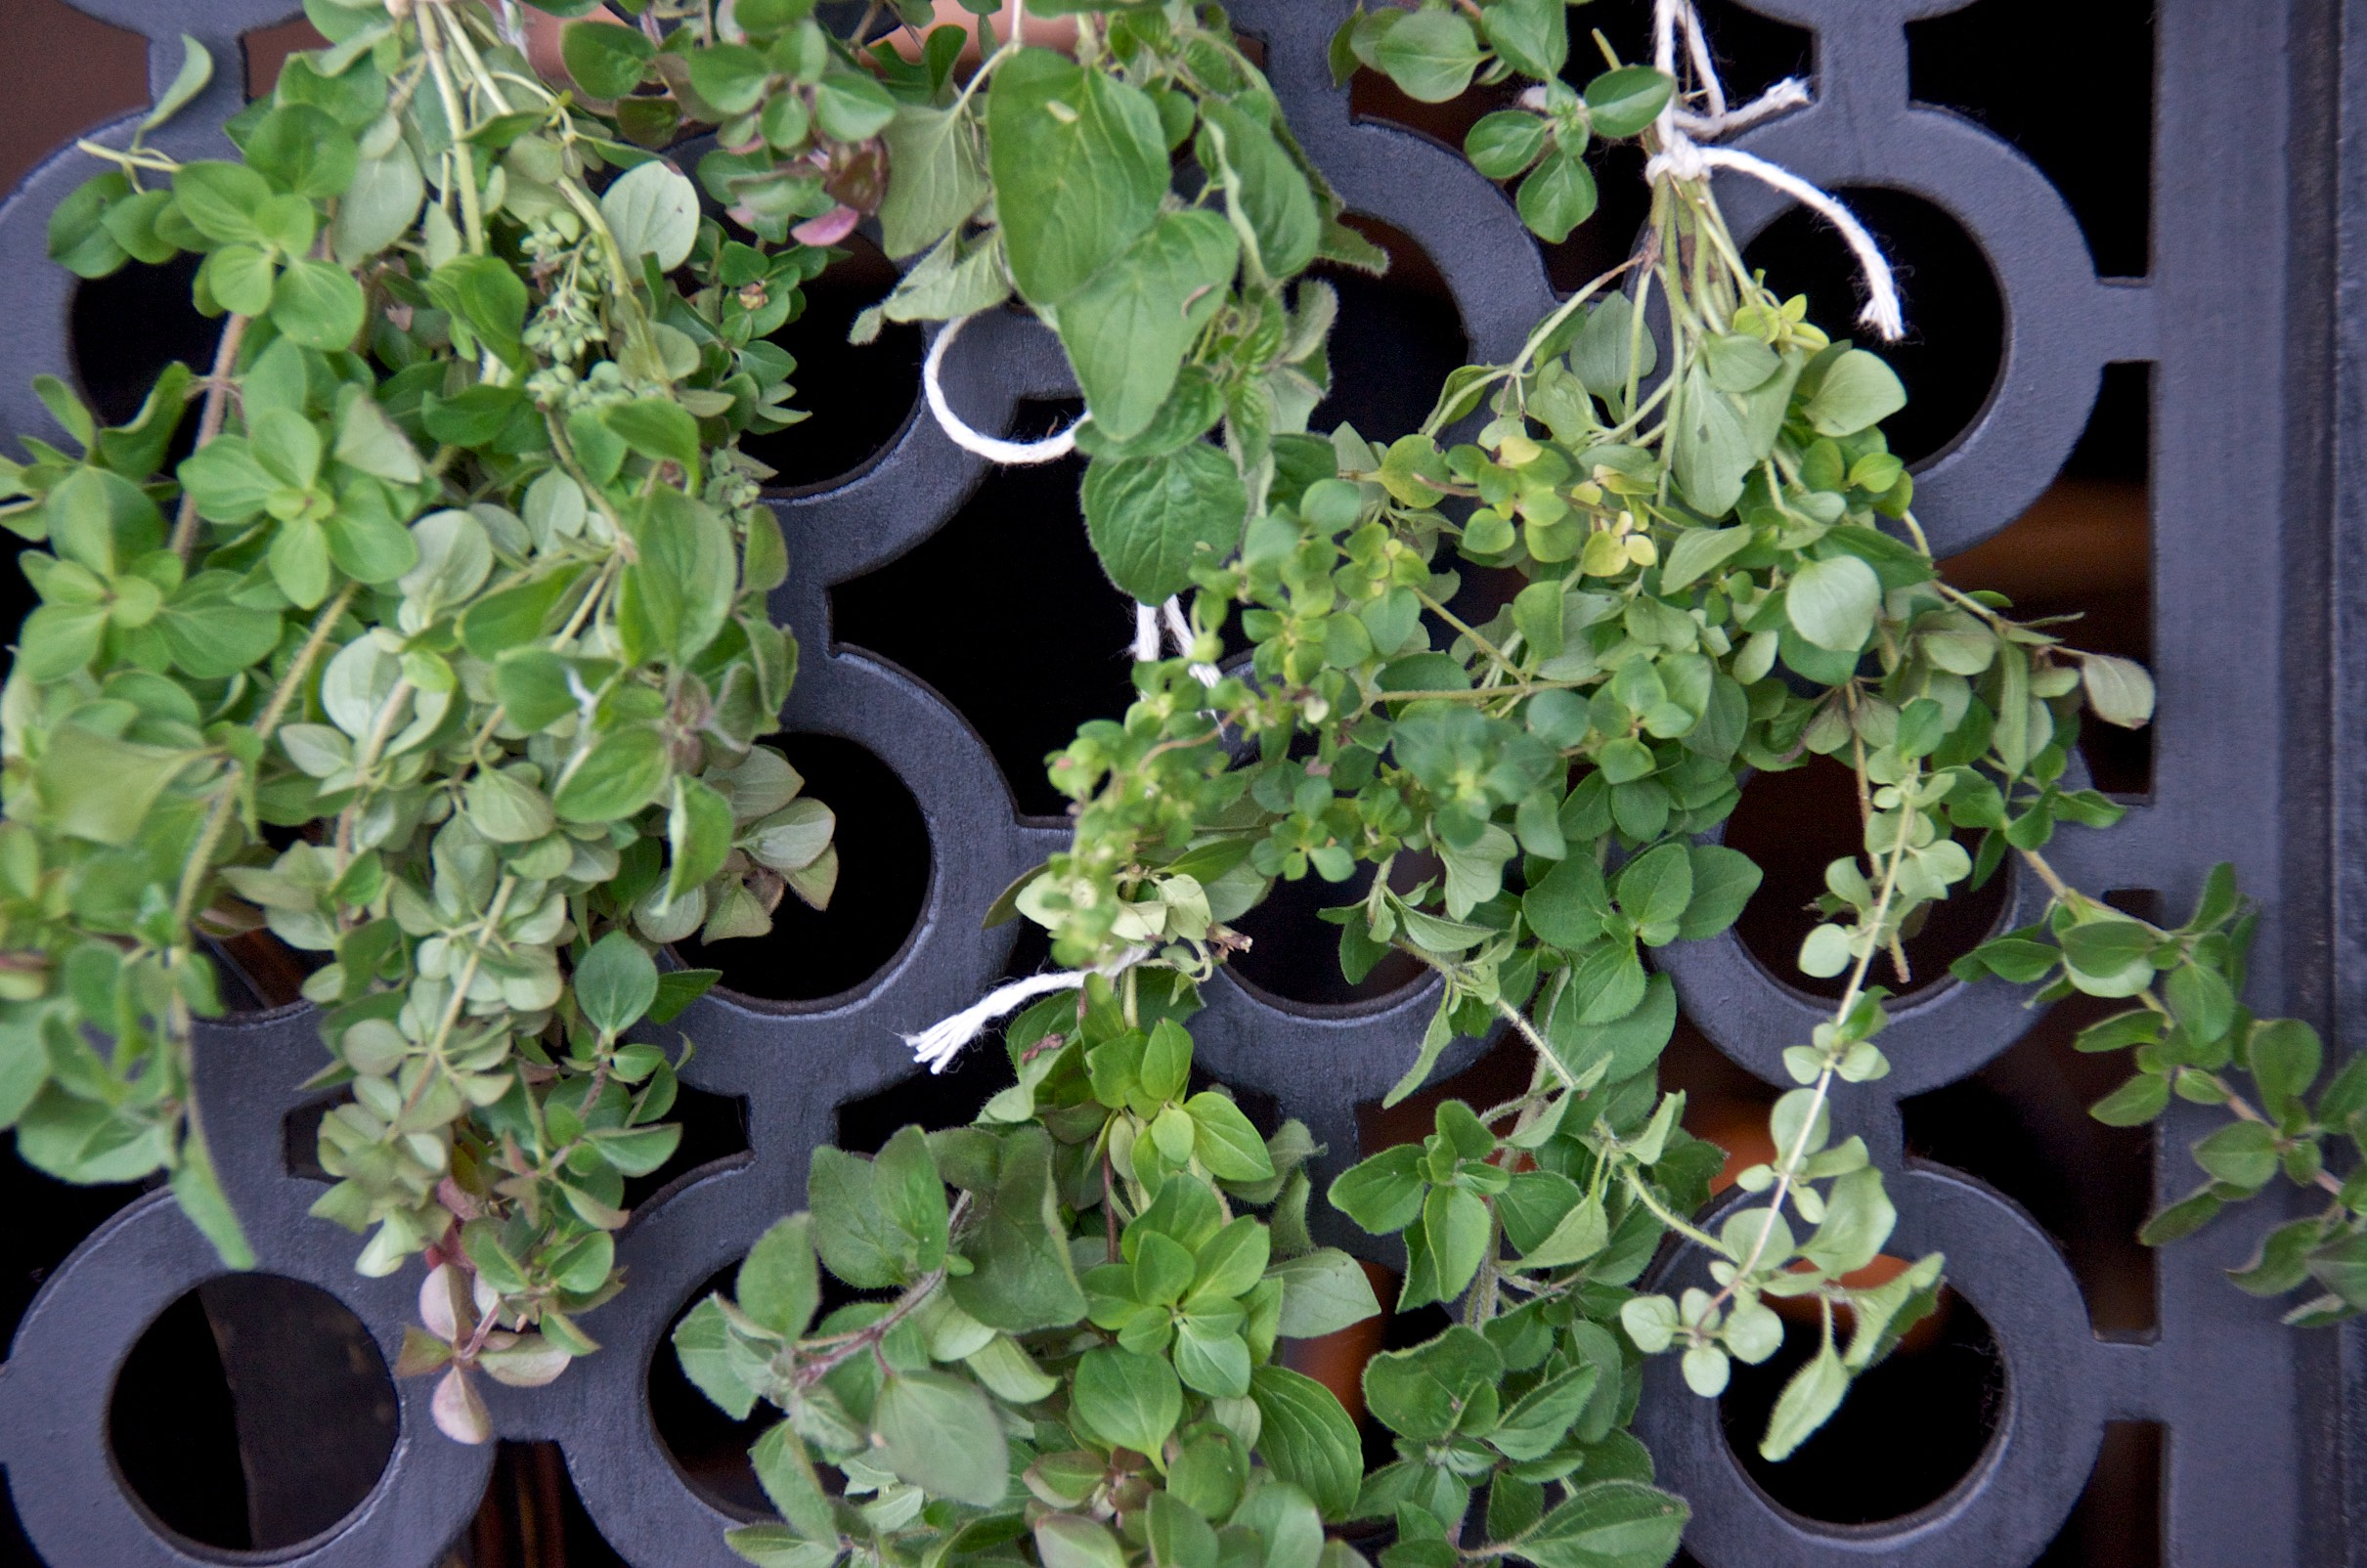 Hang-drying fresh herbs